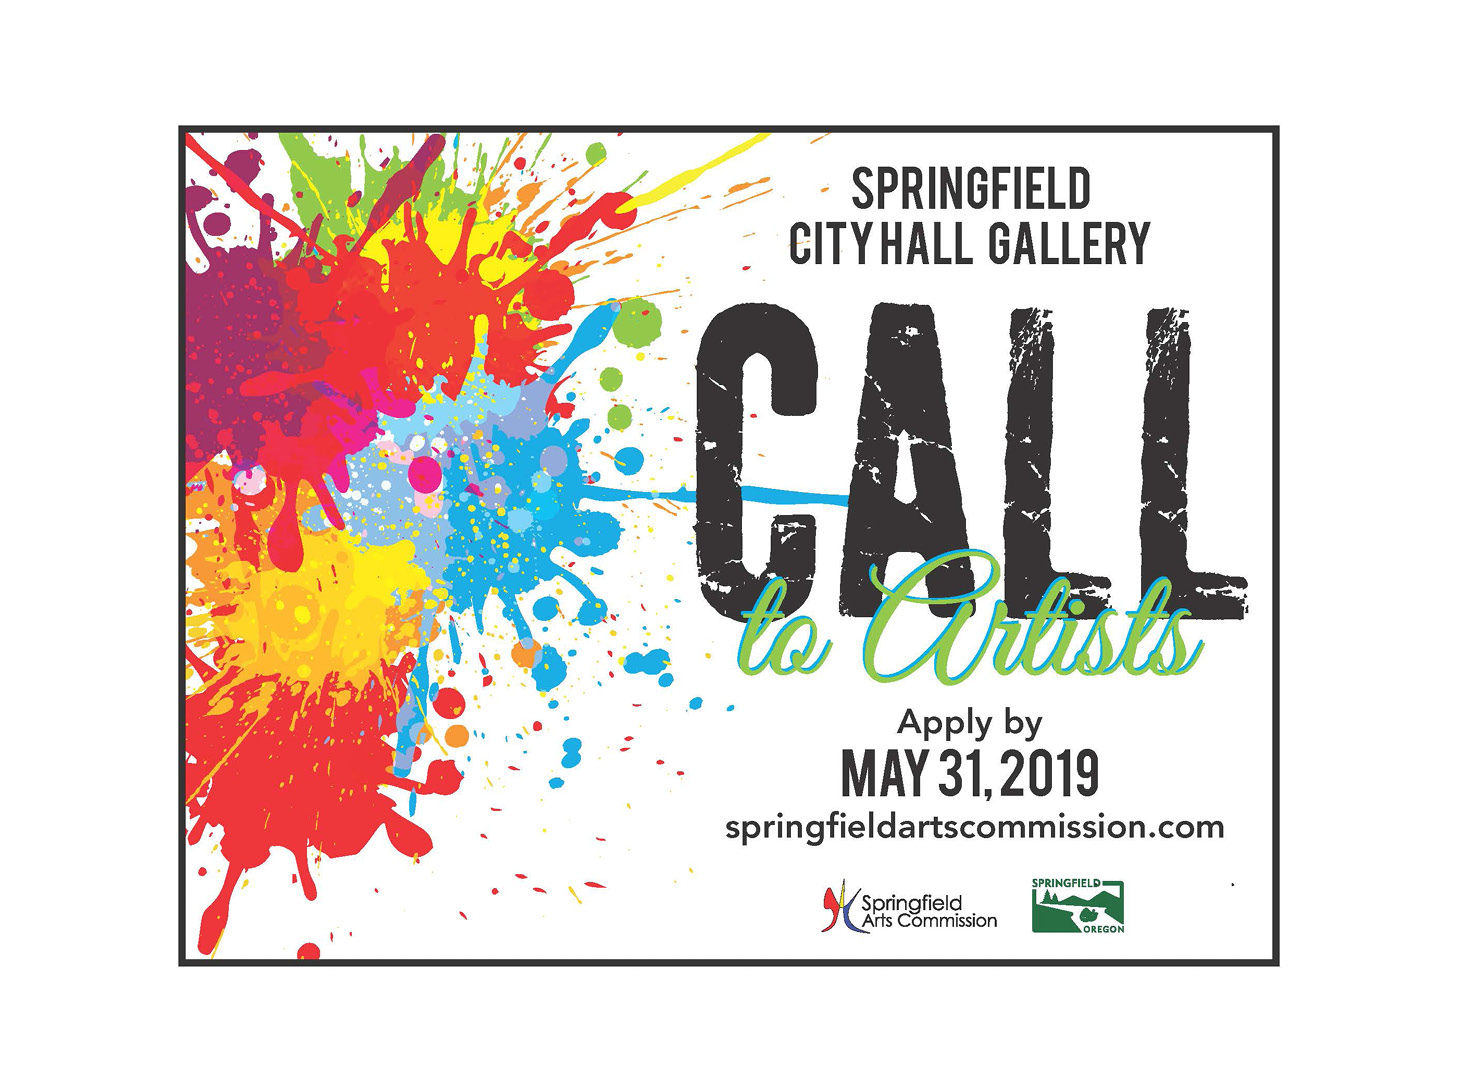 Promotion to Solicit Artists for the City Hall Gallery